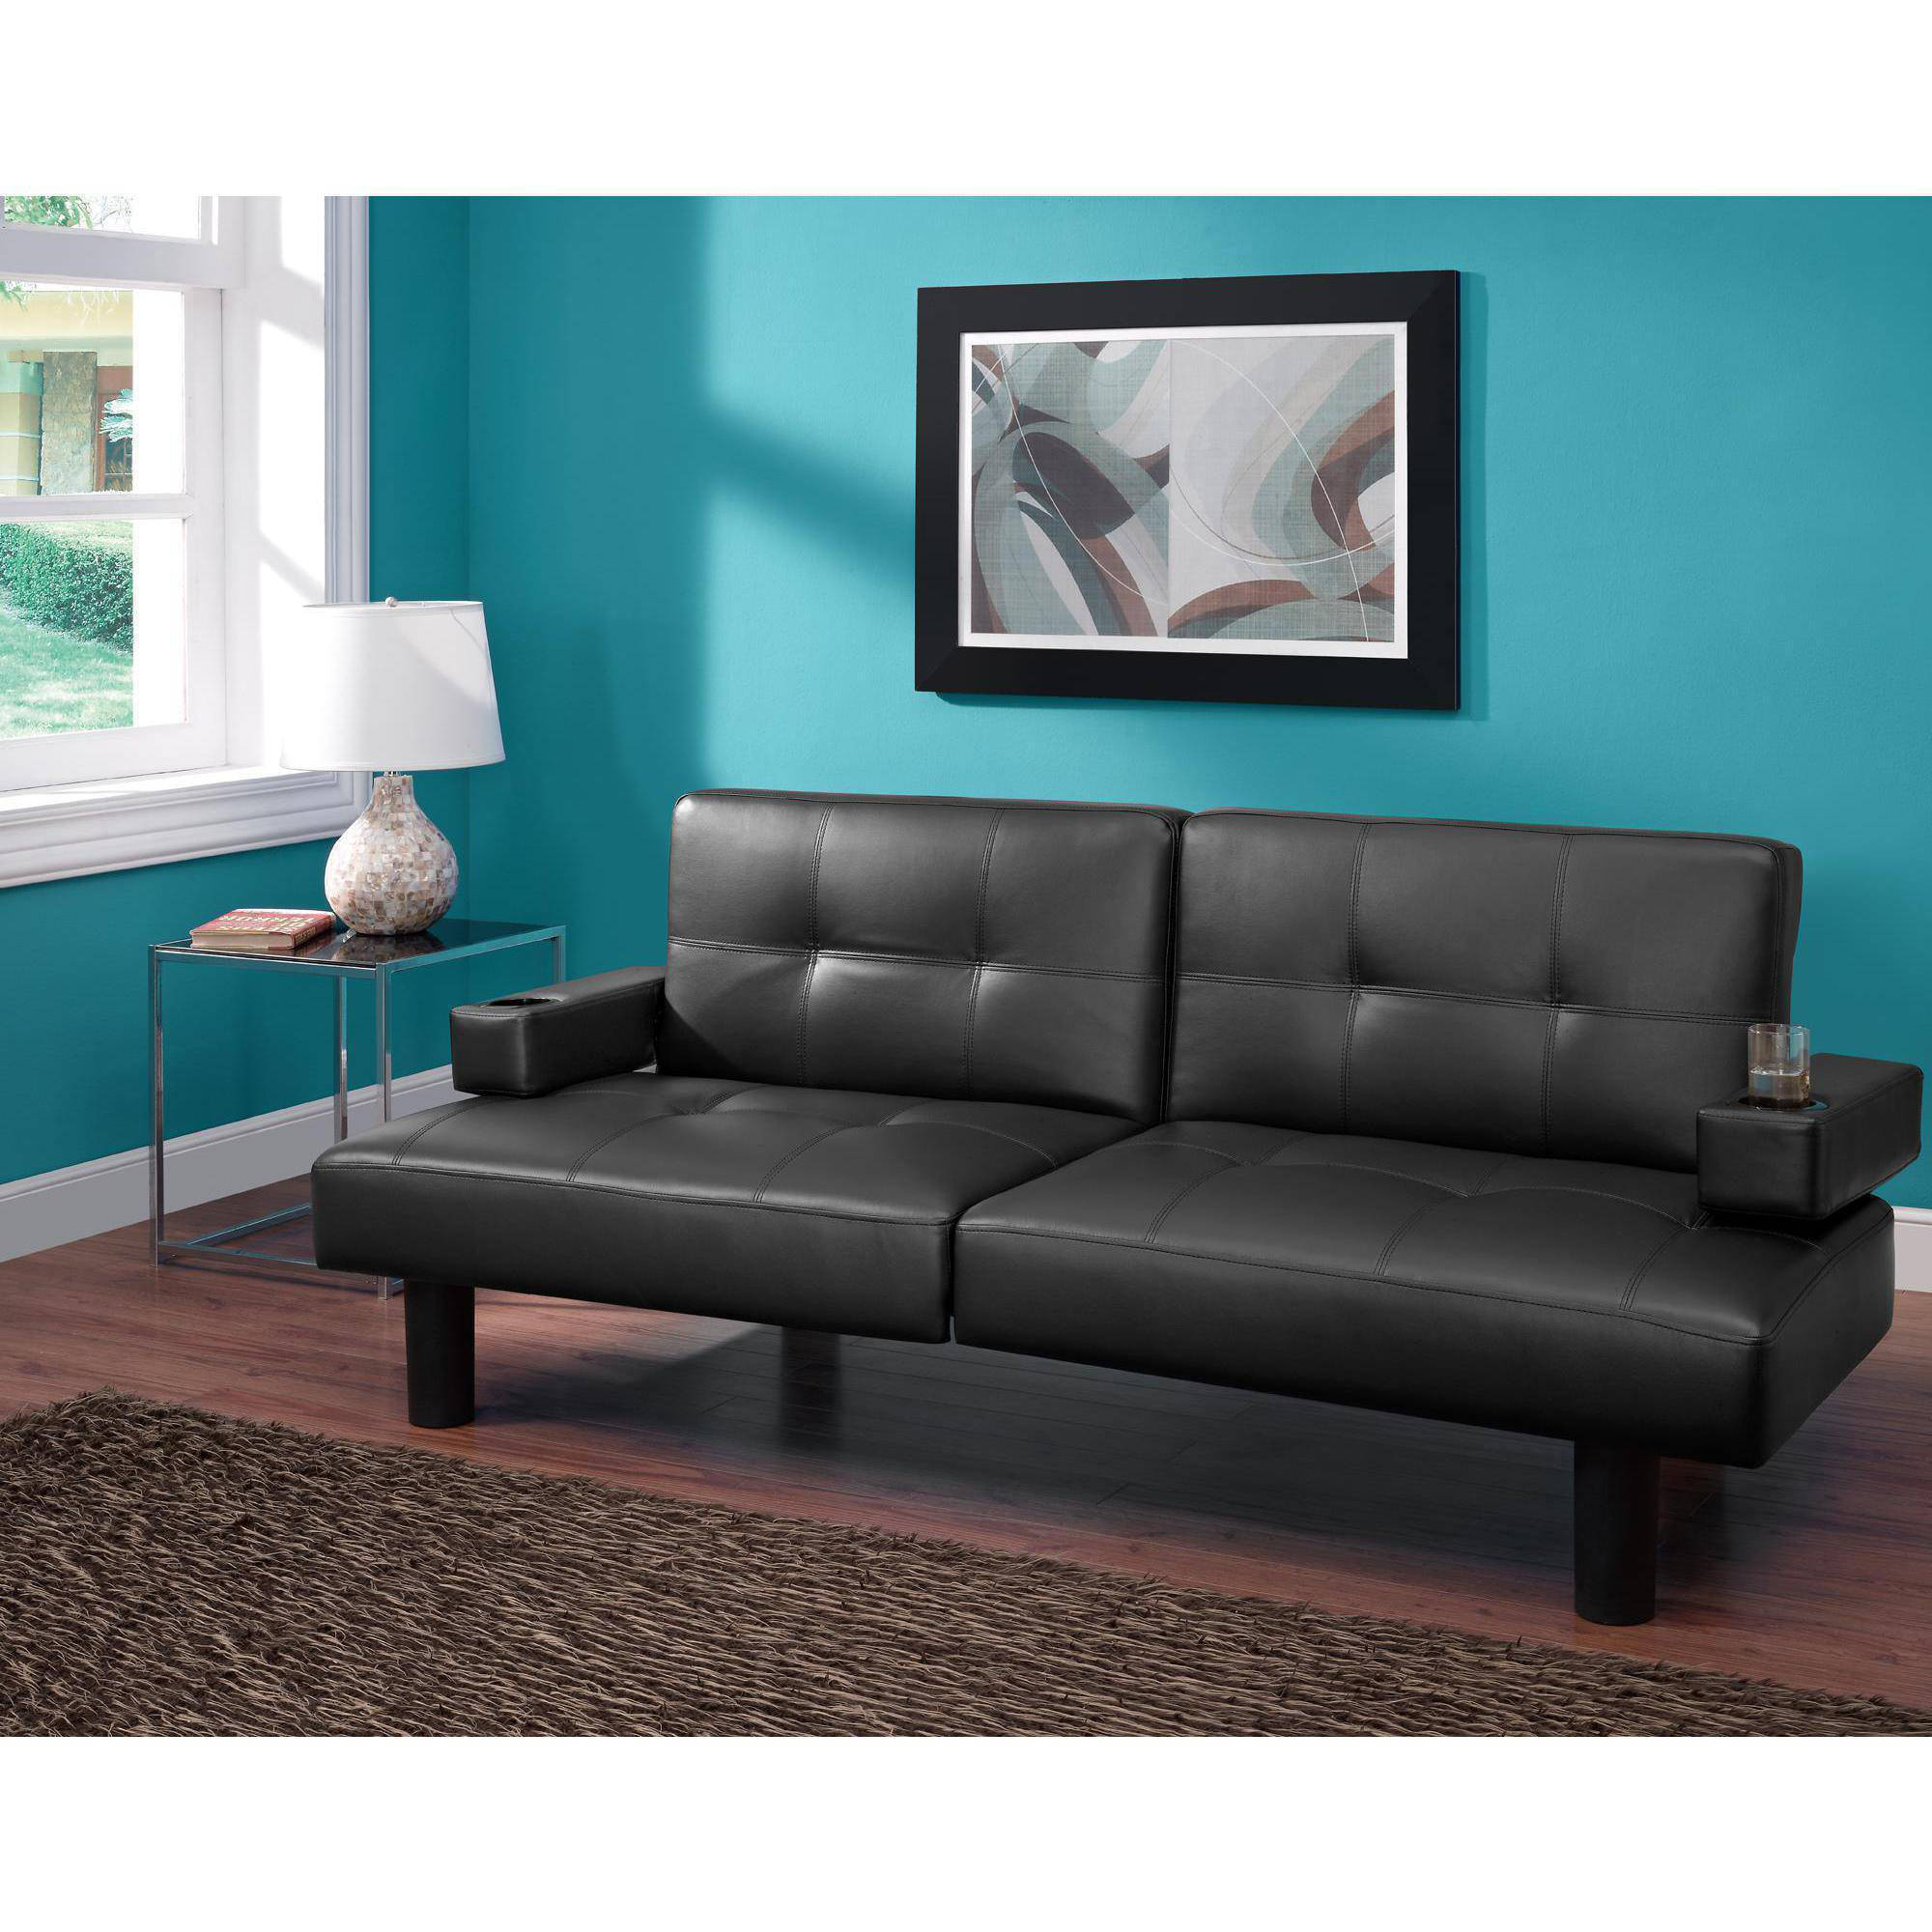 Mainstays Connectrix Faux Leather Futon and Coffee Table set